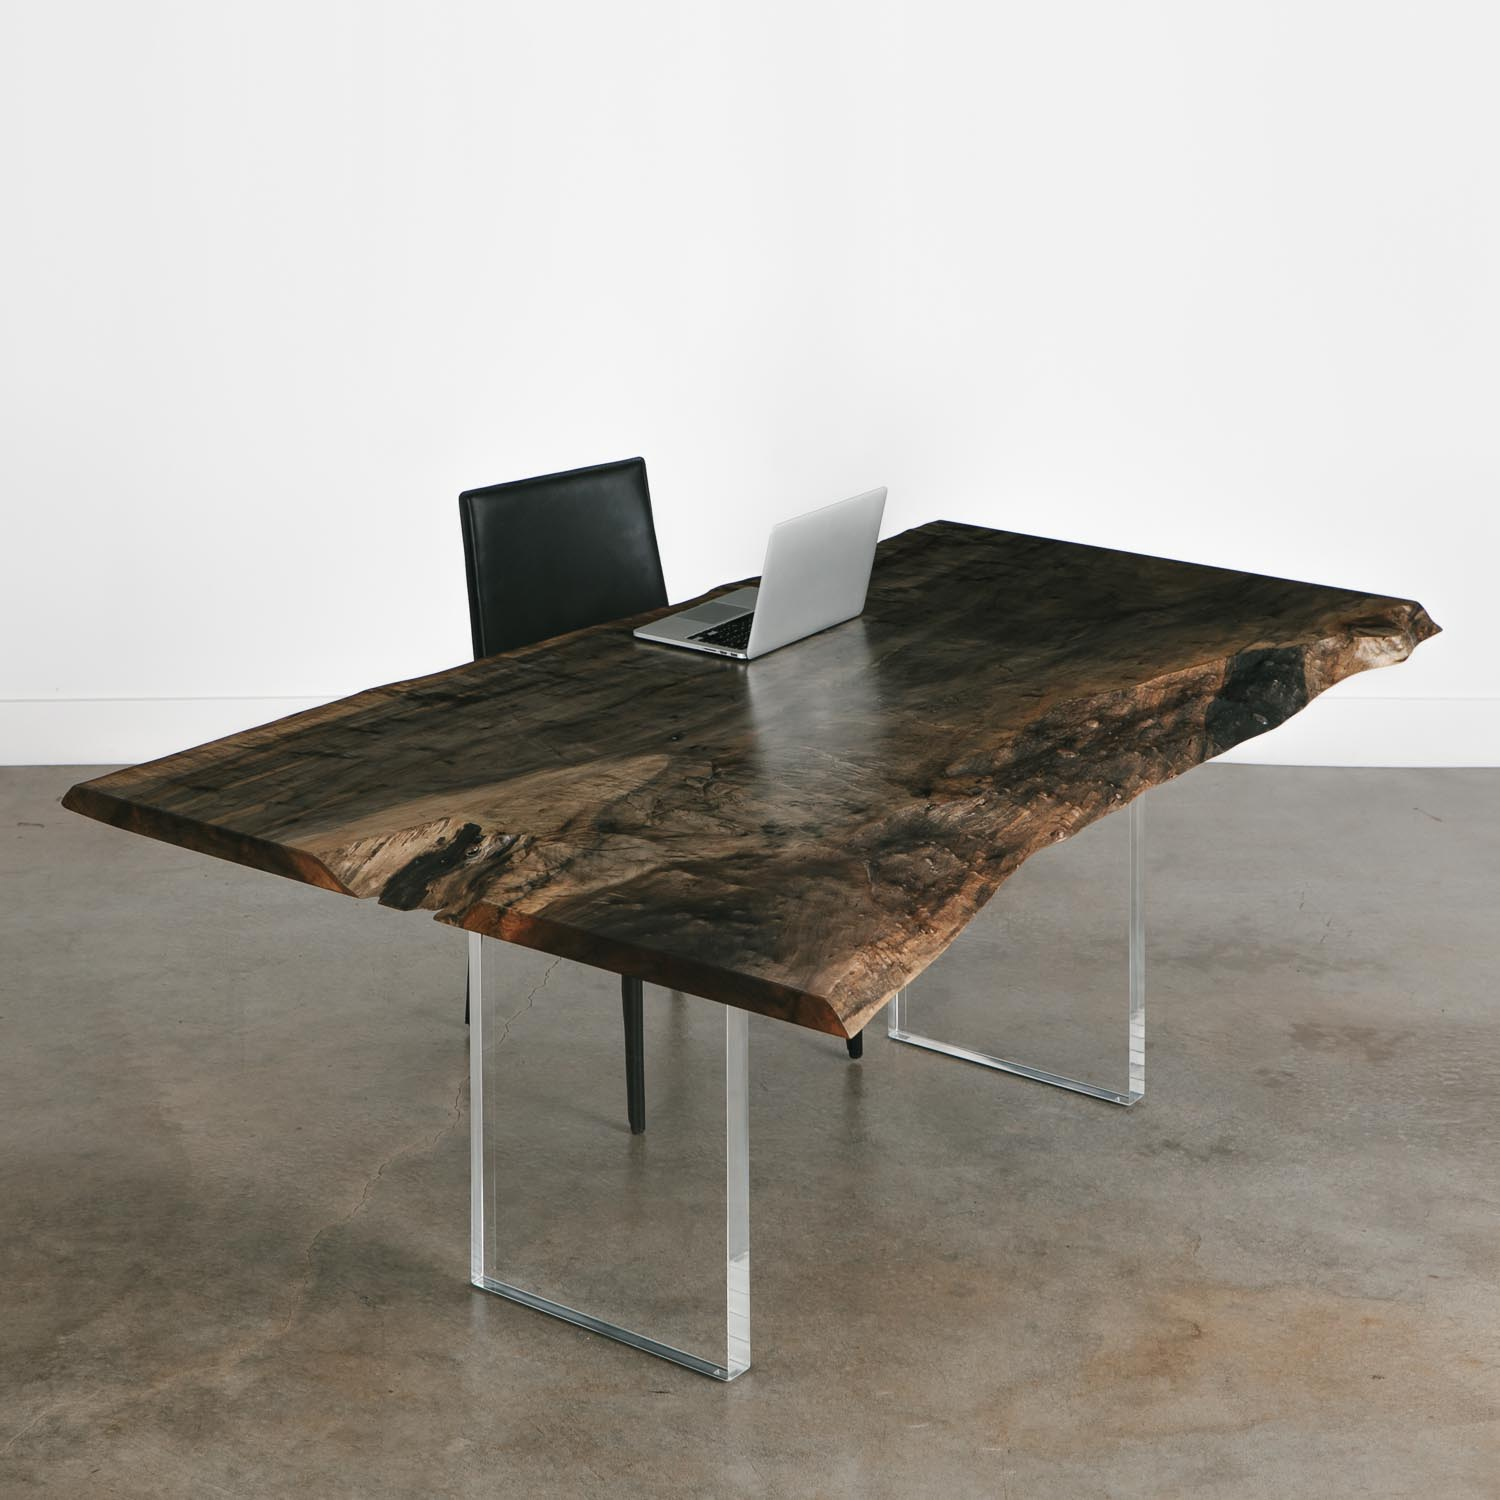 Contemporary Natural Live Edge Table With Acrylic Legs Elko Hardwoods Modern Live Edge Furniture Dining Coffee Tables Desks Benches